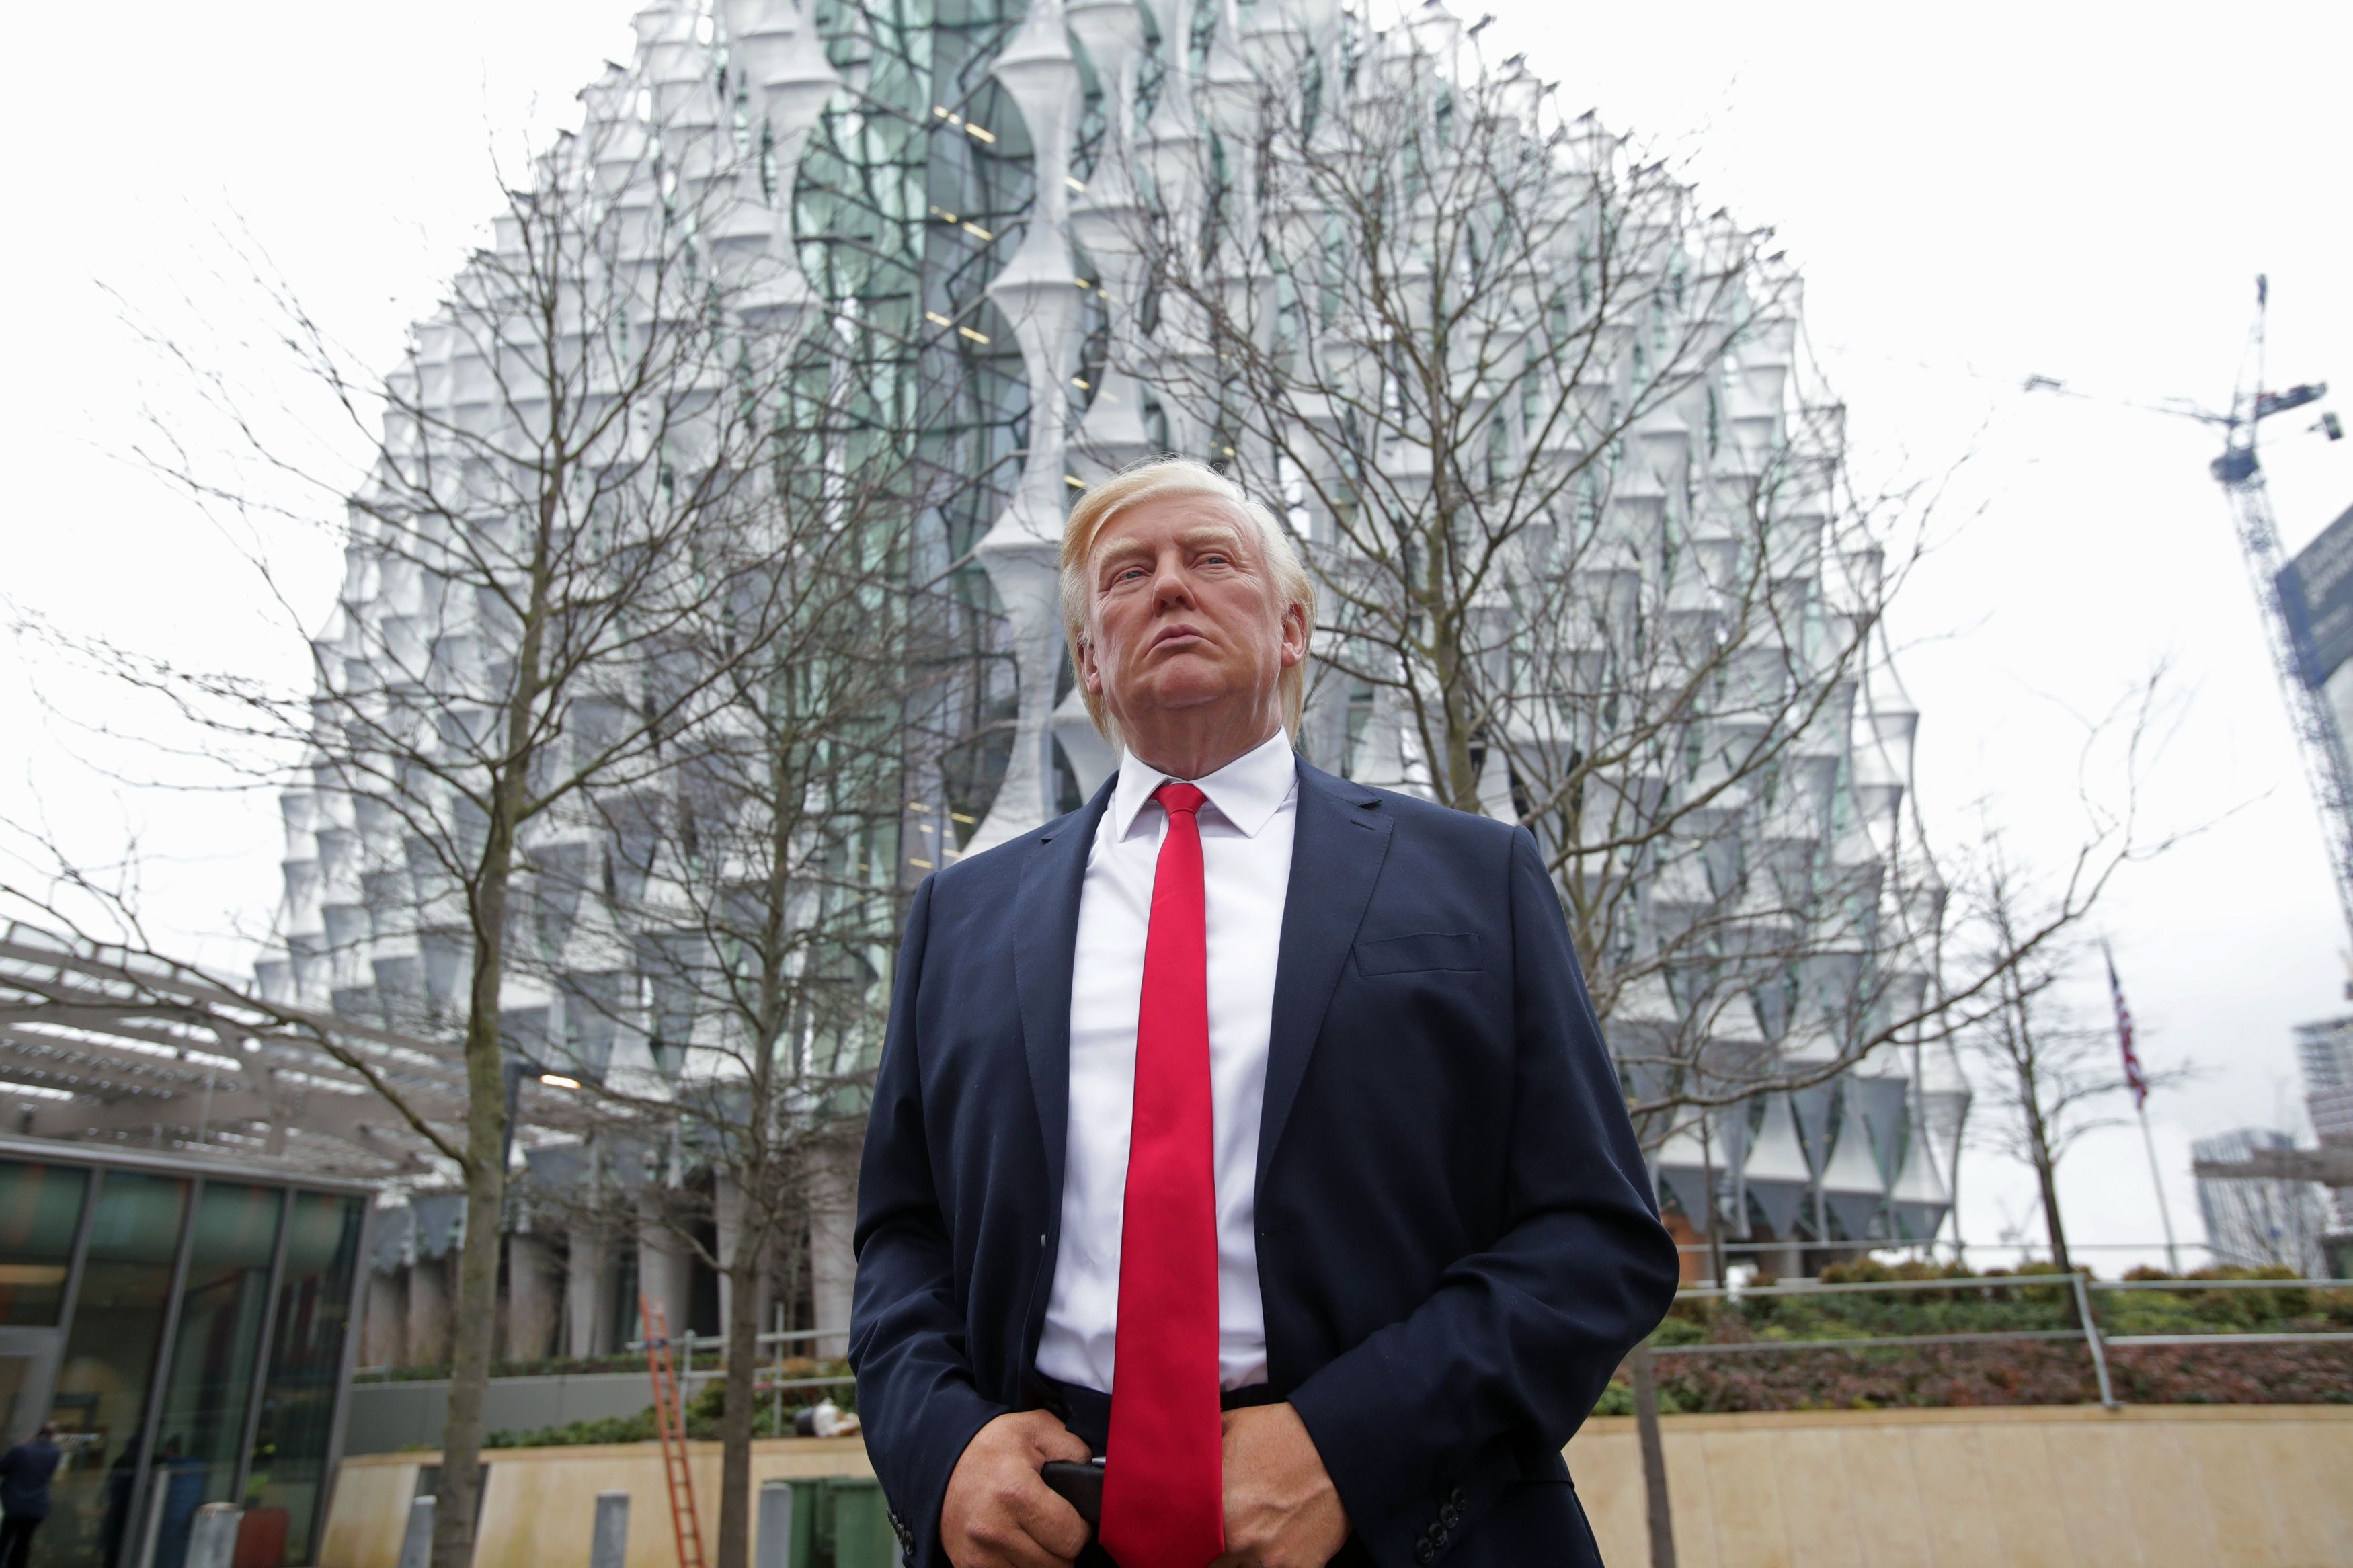 PA Wire  PA Images                   The Madame Tussauds wax figure of Donald Trump outside the new US Embassy in Nine Elms London